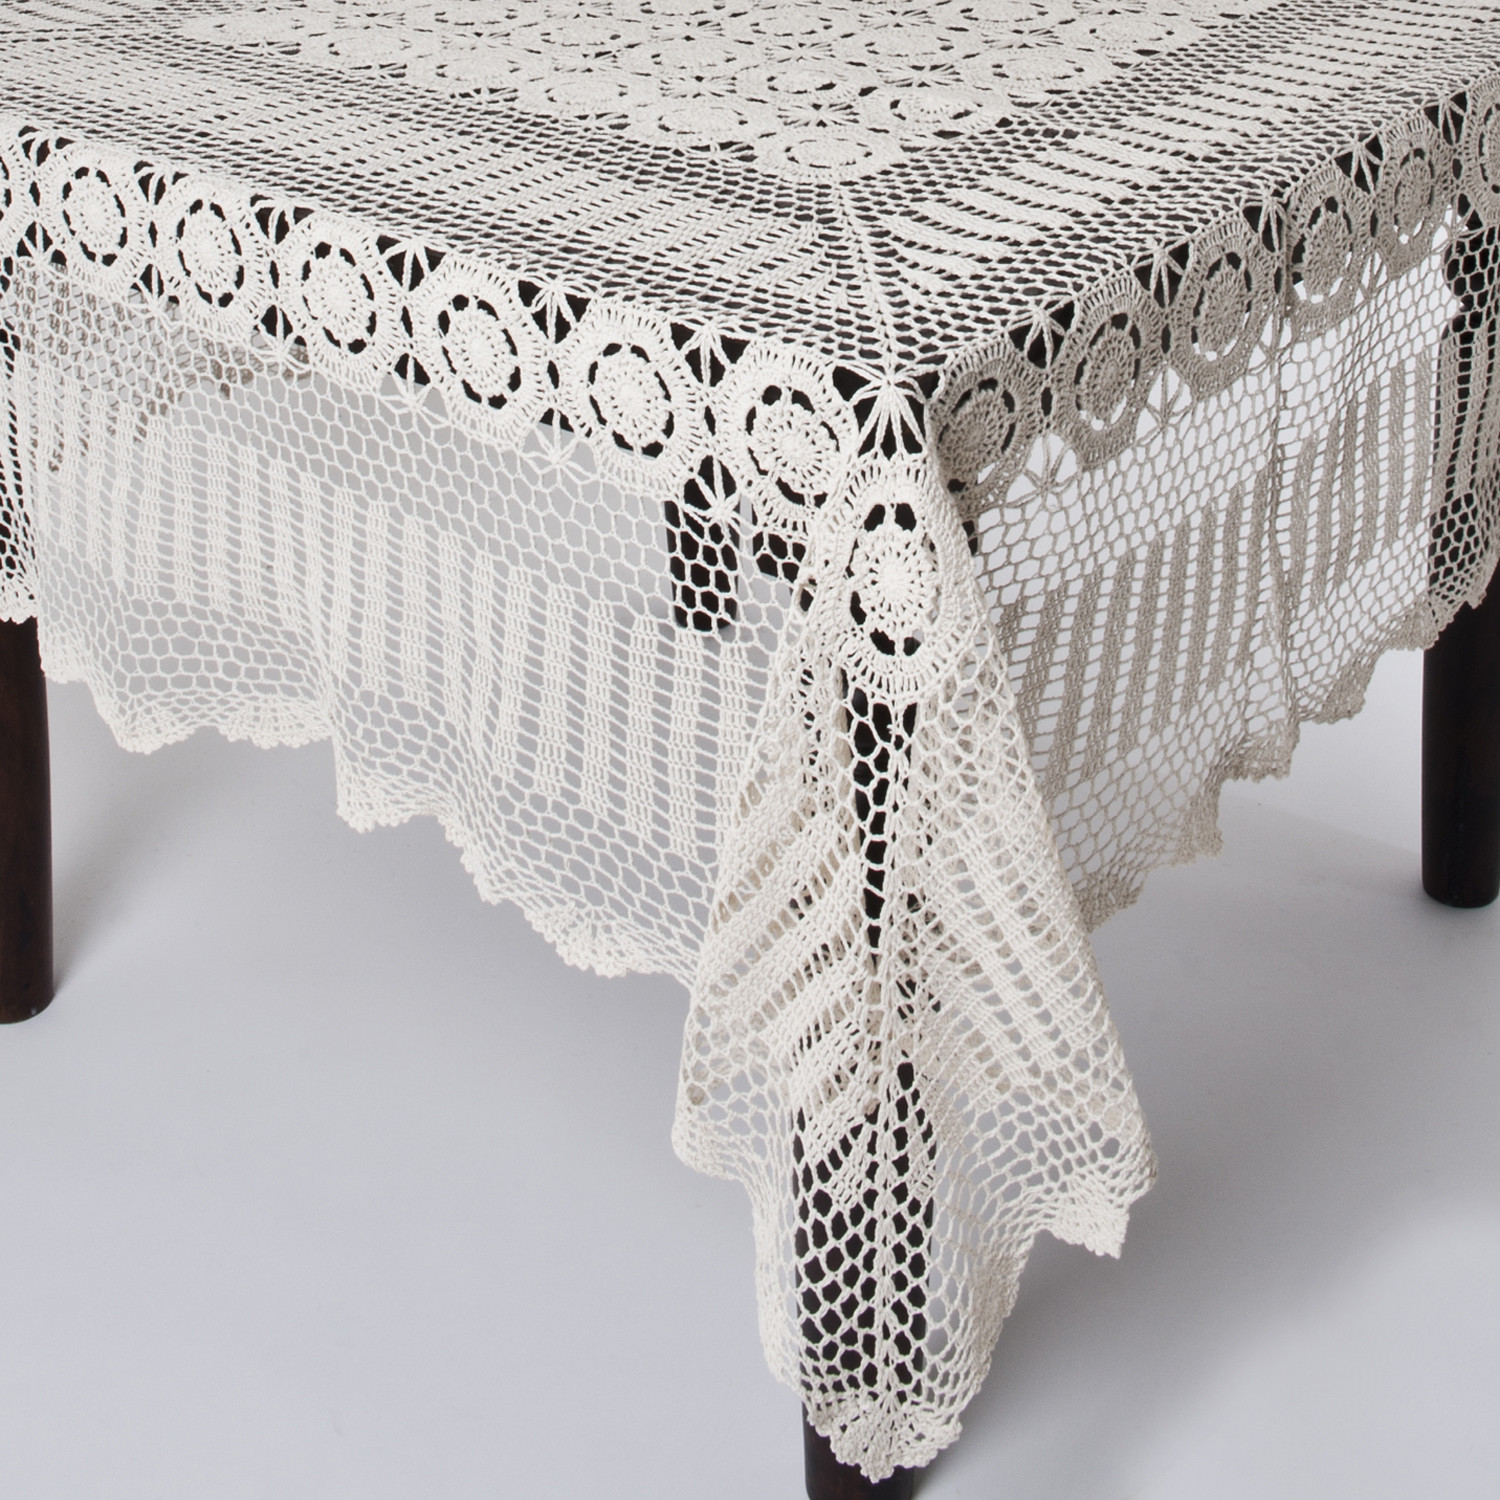 Crochet Lace Tablecloth Inspirational Saro Crochet Lace Tablecloth & Reviews Of Unique 41 Models Crochet Lace Tablecloth